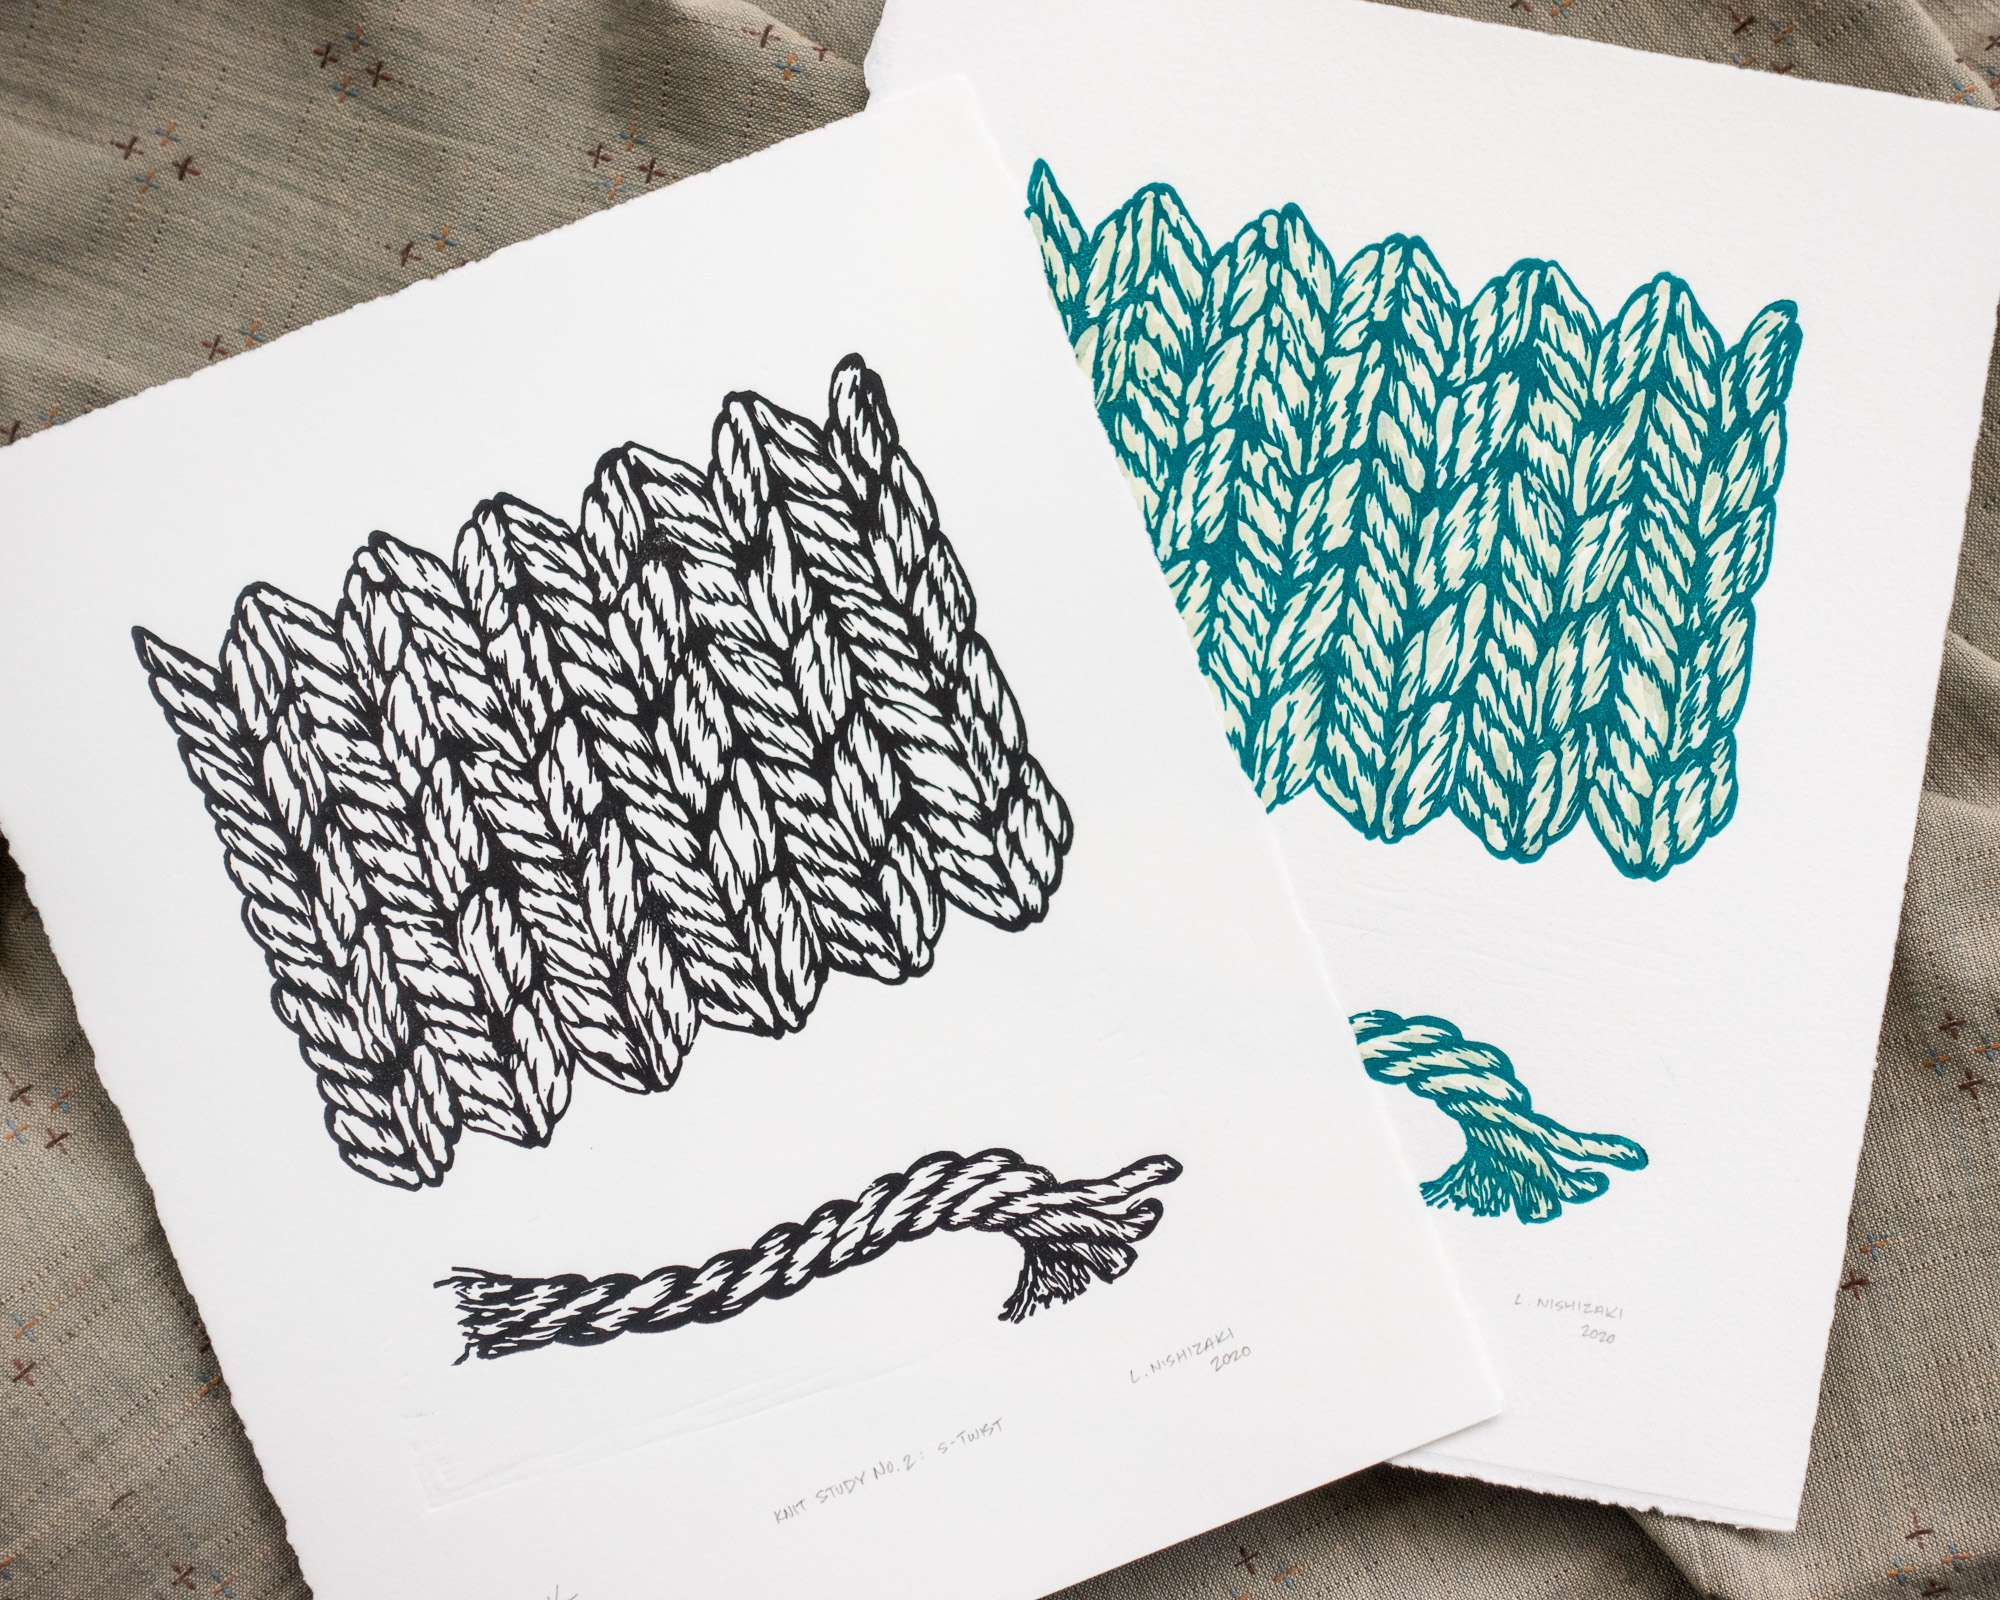 Two overlapping vertical prints on white paper, lying on top of a grey backdrop. Each print has a rectangular design of stockinette knitting stitches on top, and a depiction of a horizontal strand of yarn below. The left print is black; the right print is green with subtle green/yellow coloring.